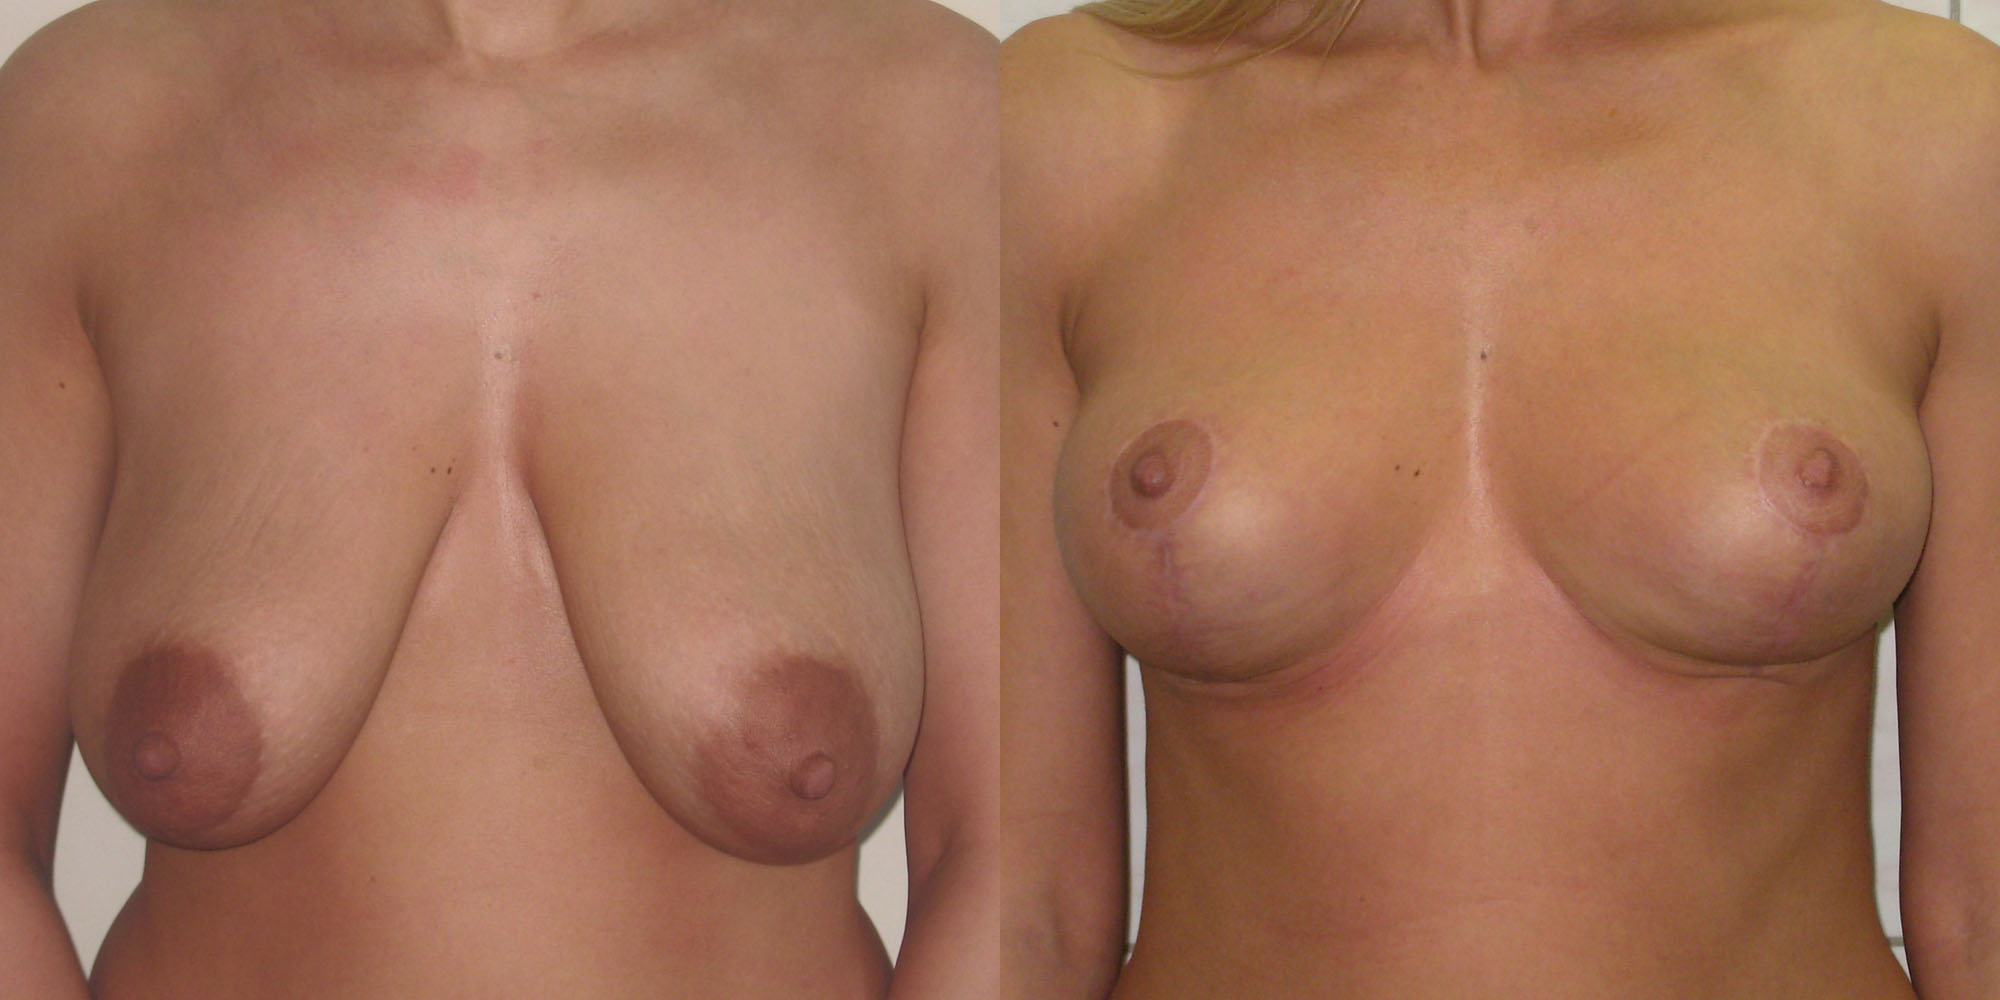 Mammoplasty surgery